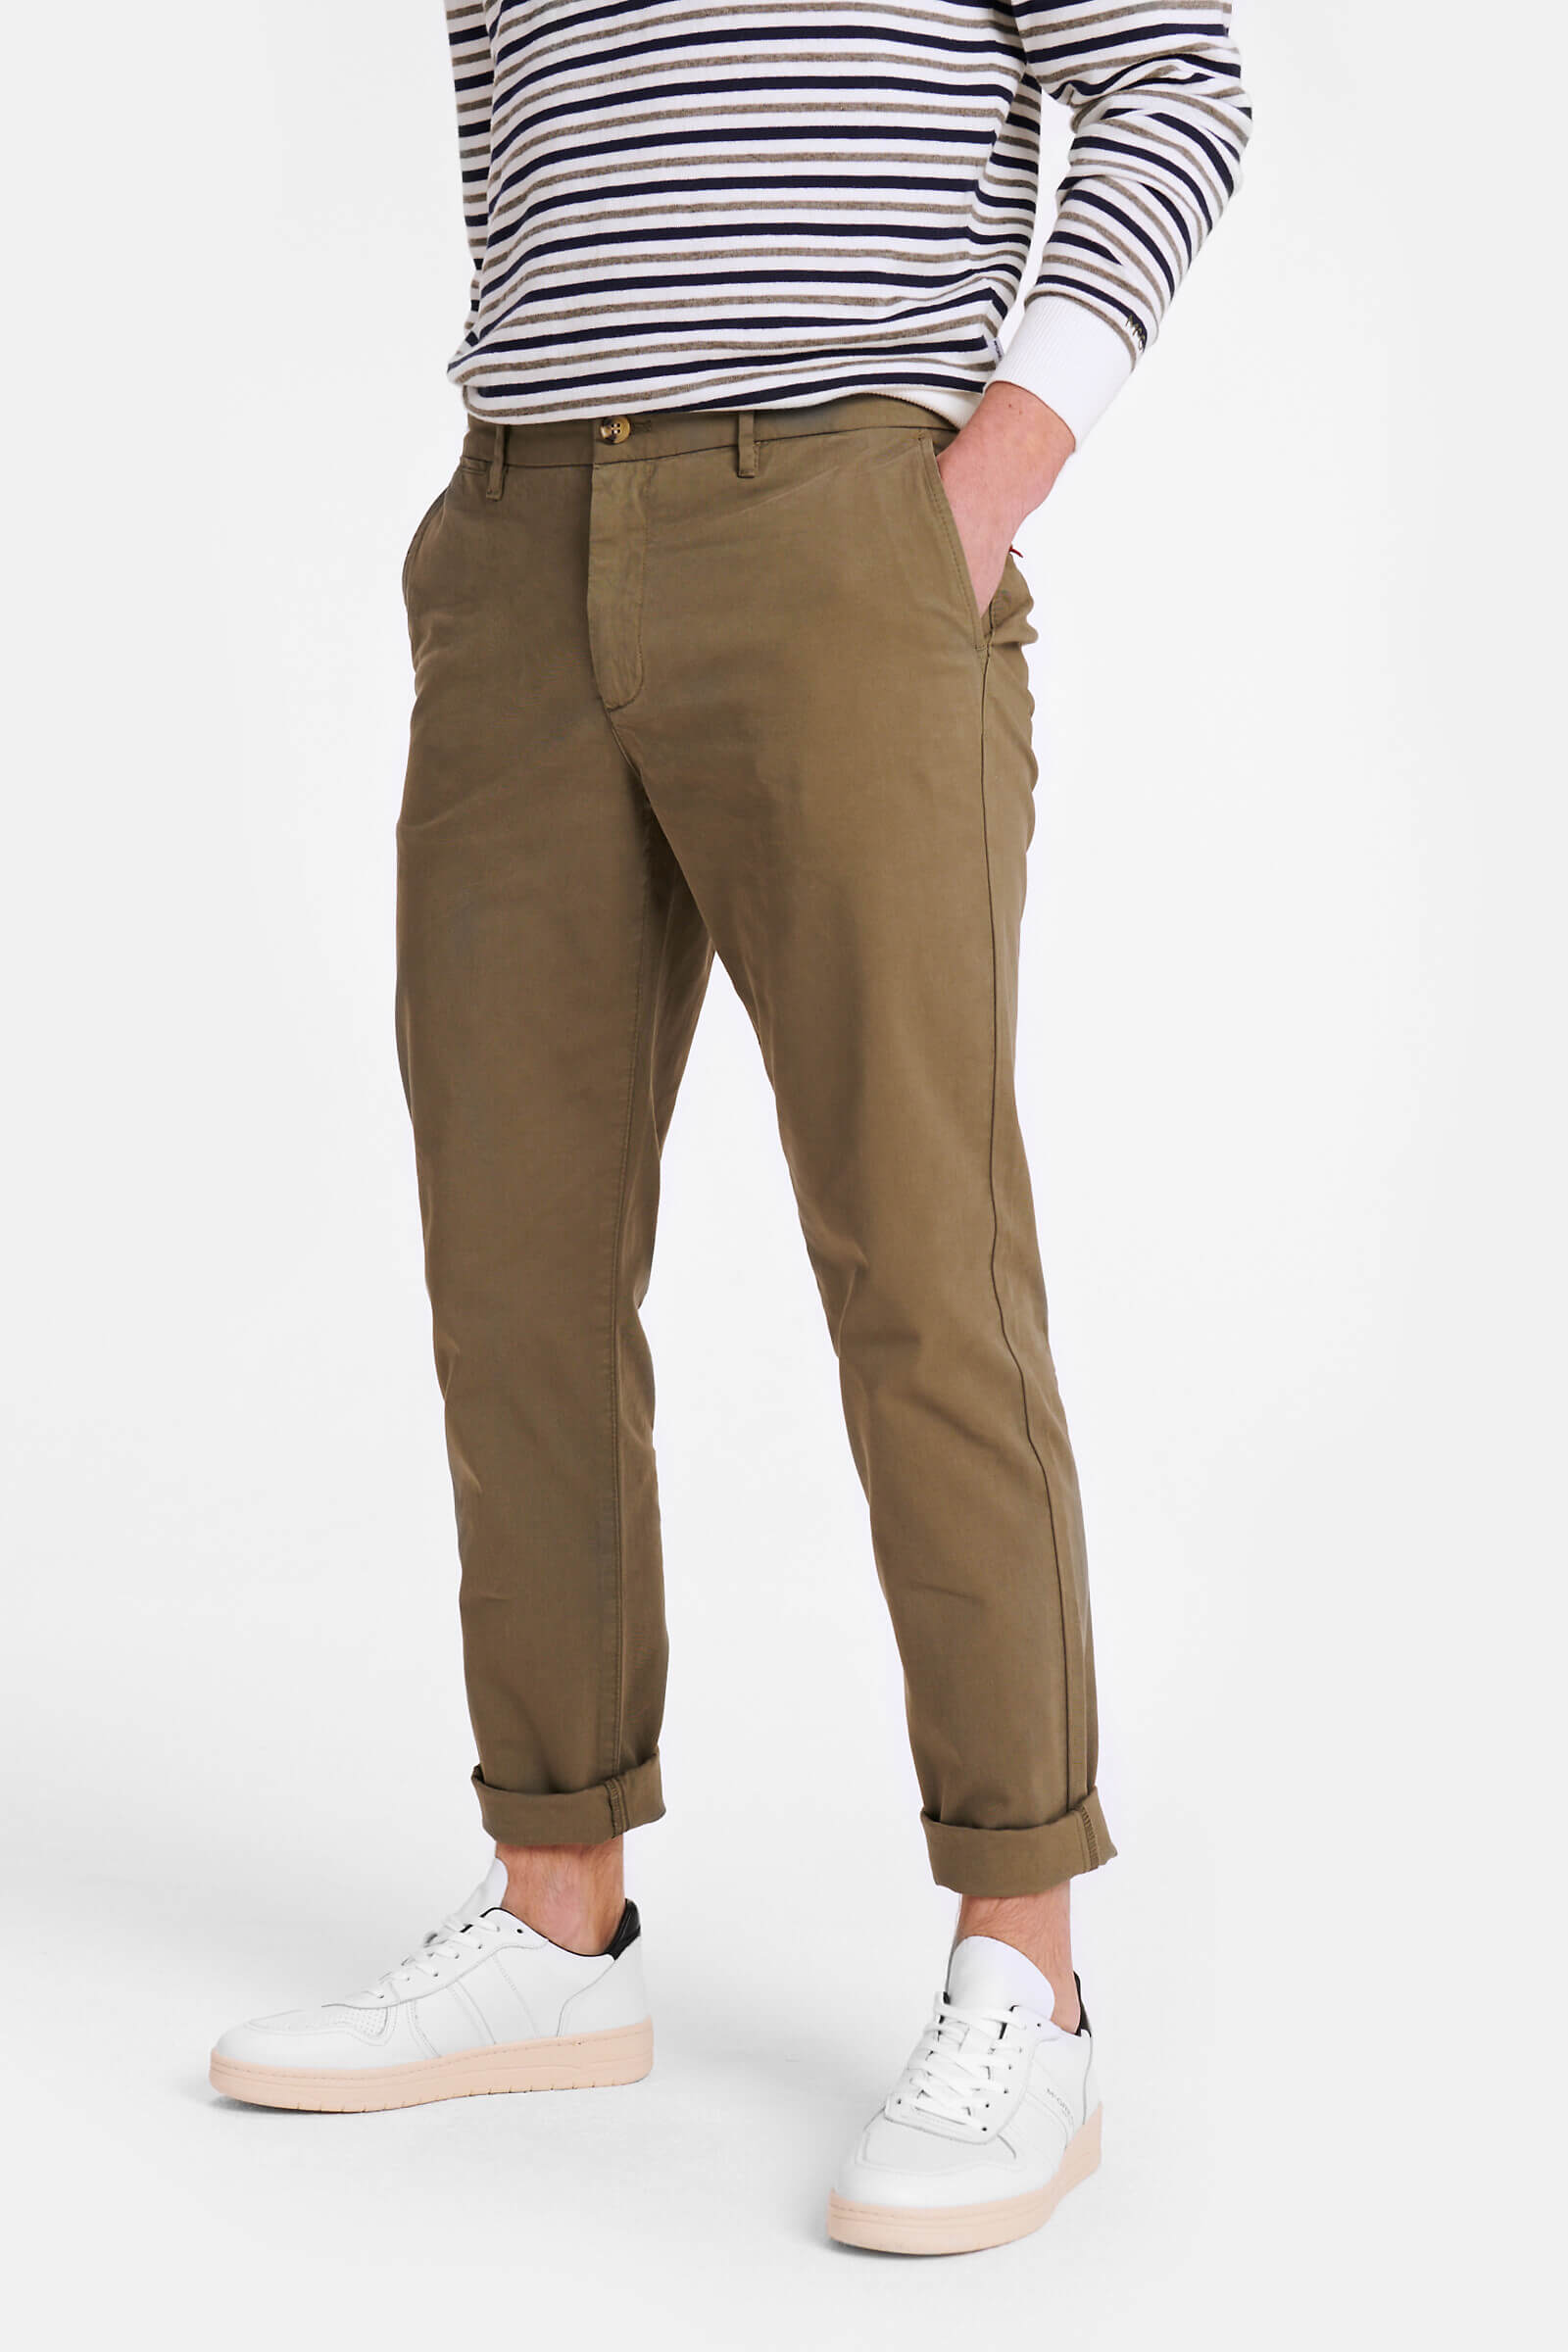 Slim fit garment dyed chino